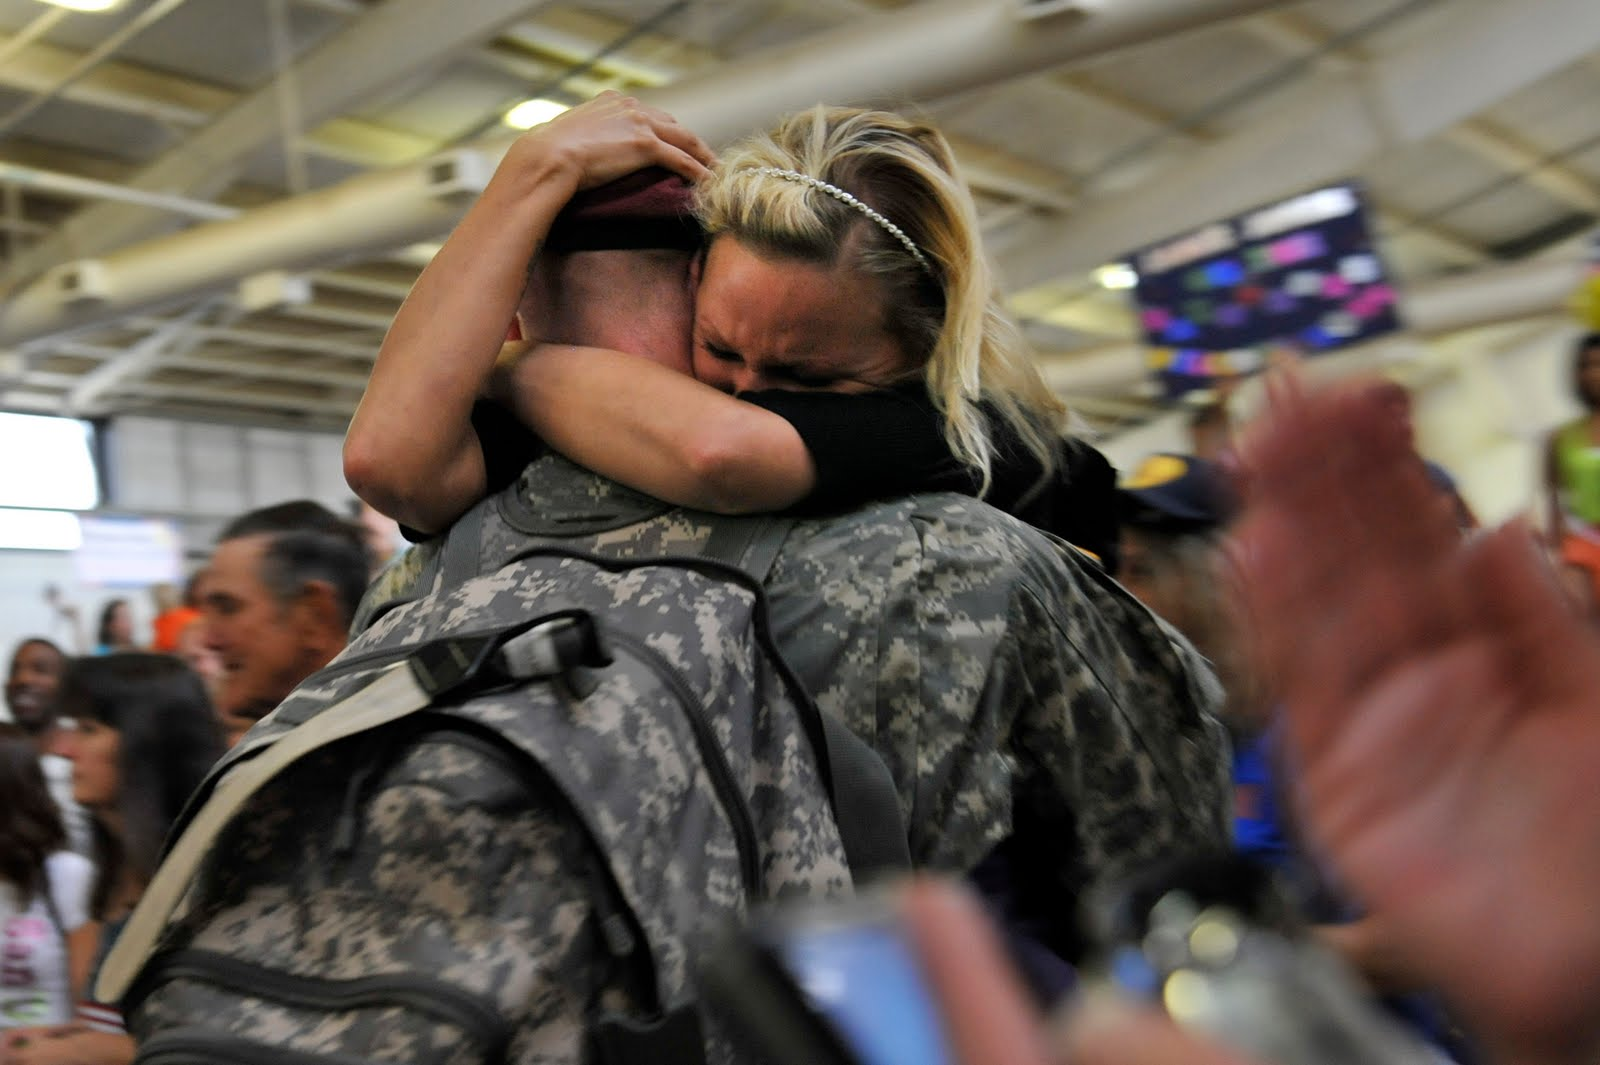 Soldier surprises girlfriend with homecoming, then drops to one knee for an even bigger surprise